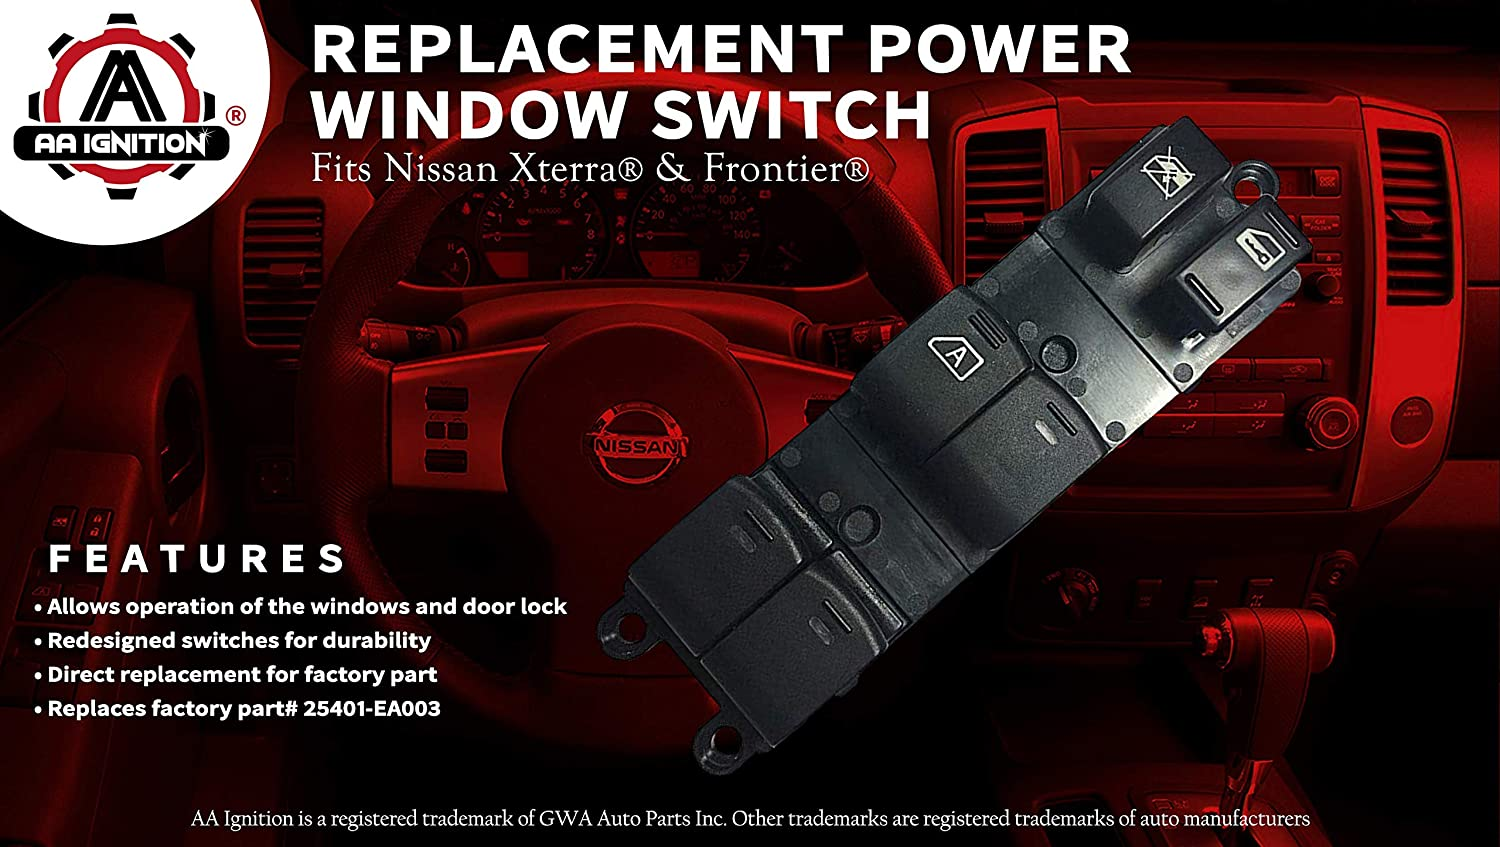 Power Window Switch Fits Nissan Frontier Xterra 2008 Wiring Diagram Light Replaces 25401 Ea003 2005 2006 2007 2009 2010 2011 2012 Models Driver